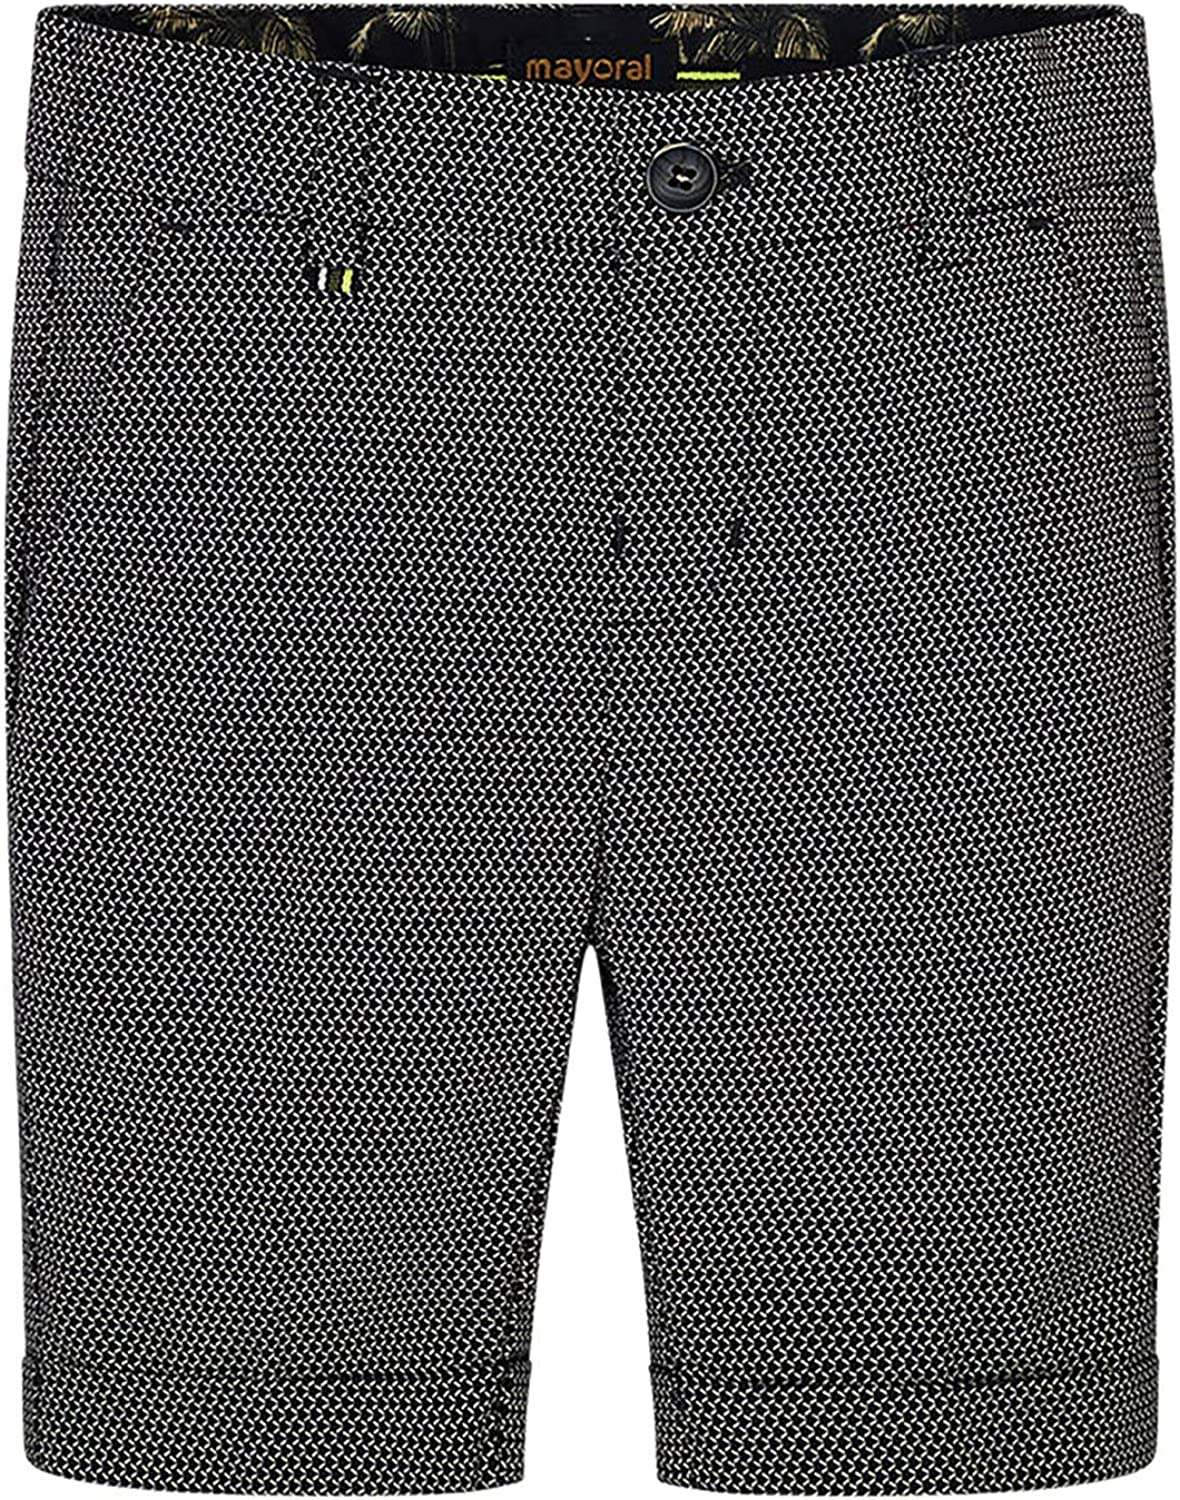 Mayoral - Tailored Linen Shorts for Boys - 3225, Printed